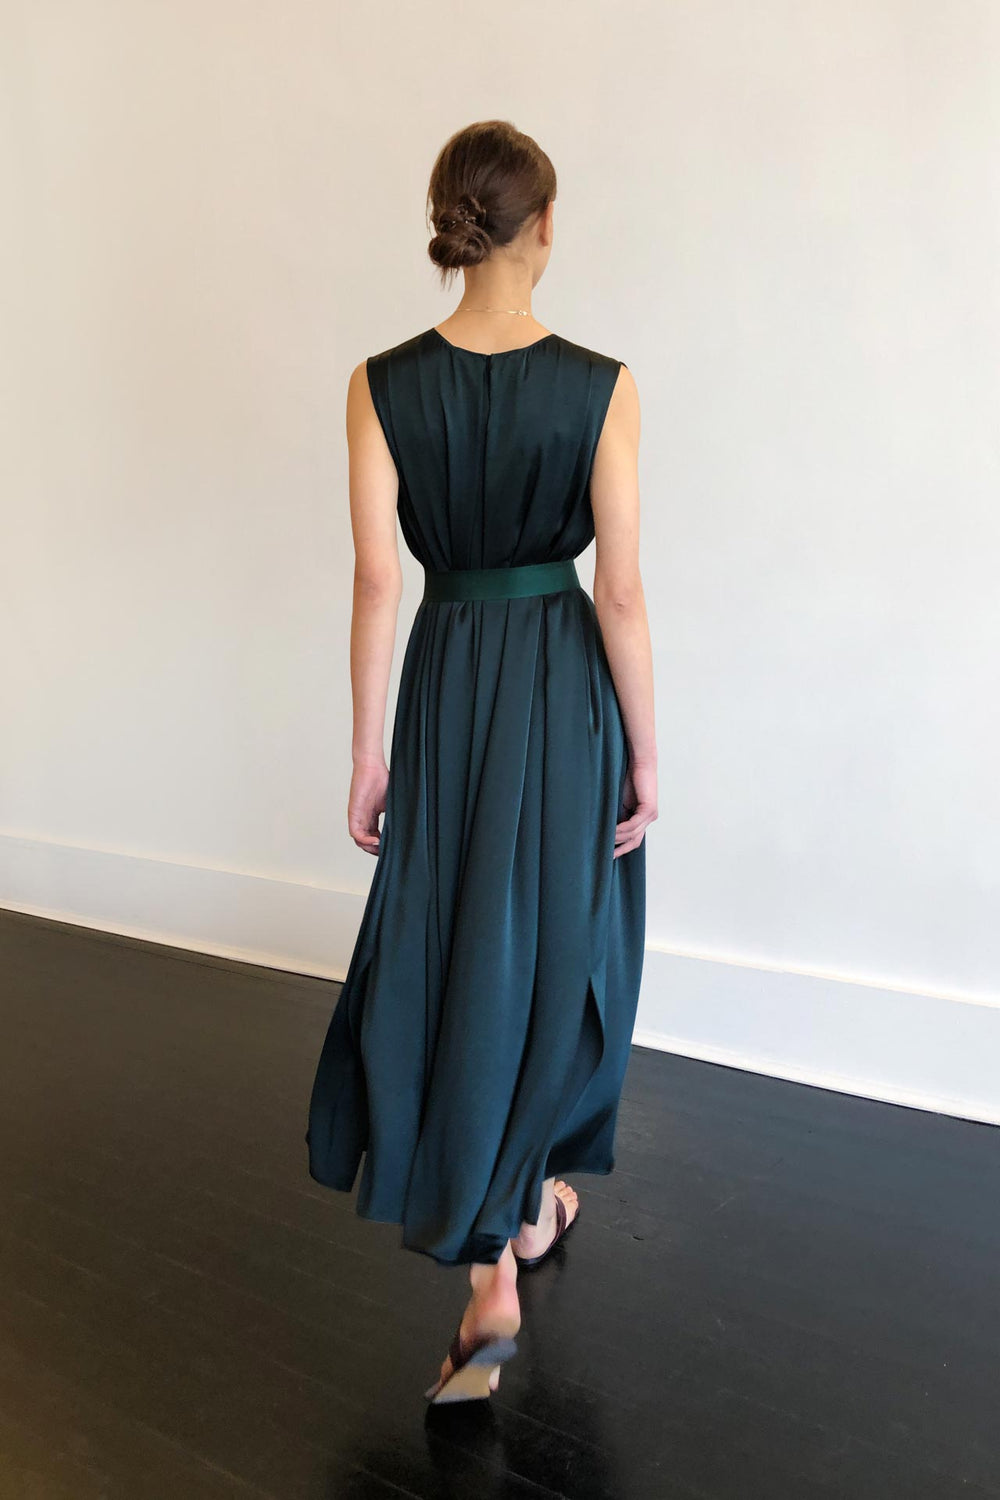 Fashion Designer CARL KAPP collection | Palm Onesize Fits All cocktail dress Green | Sydney Australia